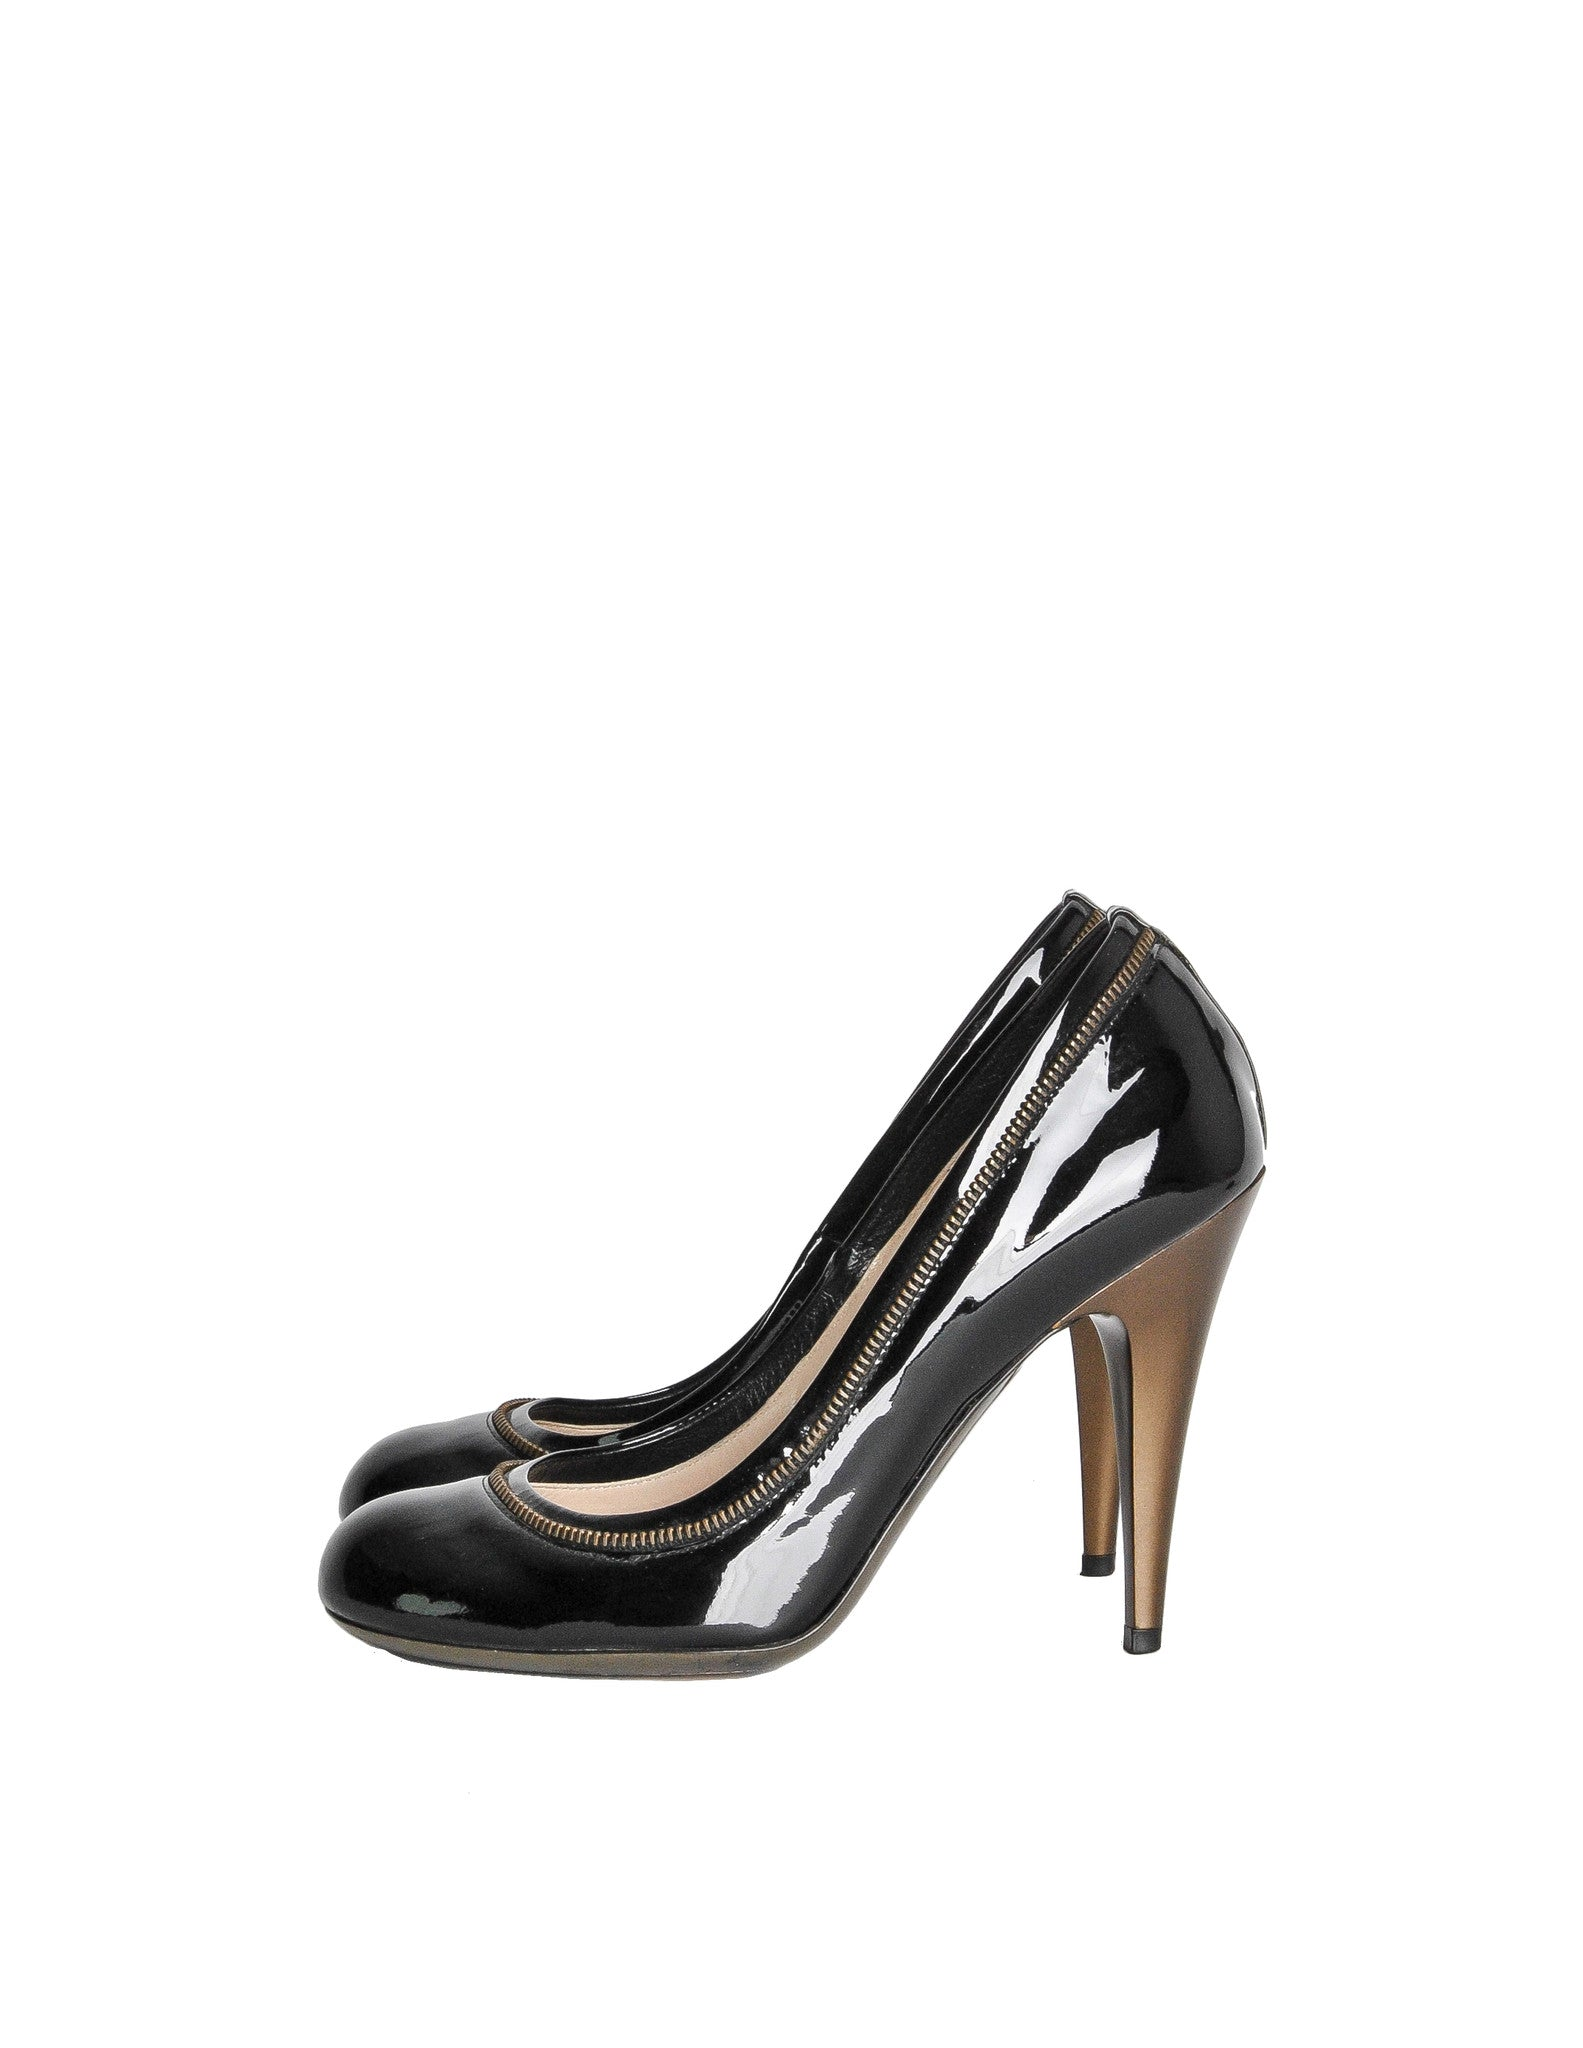 YSL Black Patent Leather Zipper Heels - Amarcord Vintage Fashion  - 1